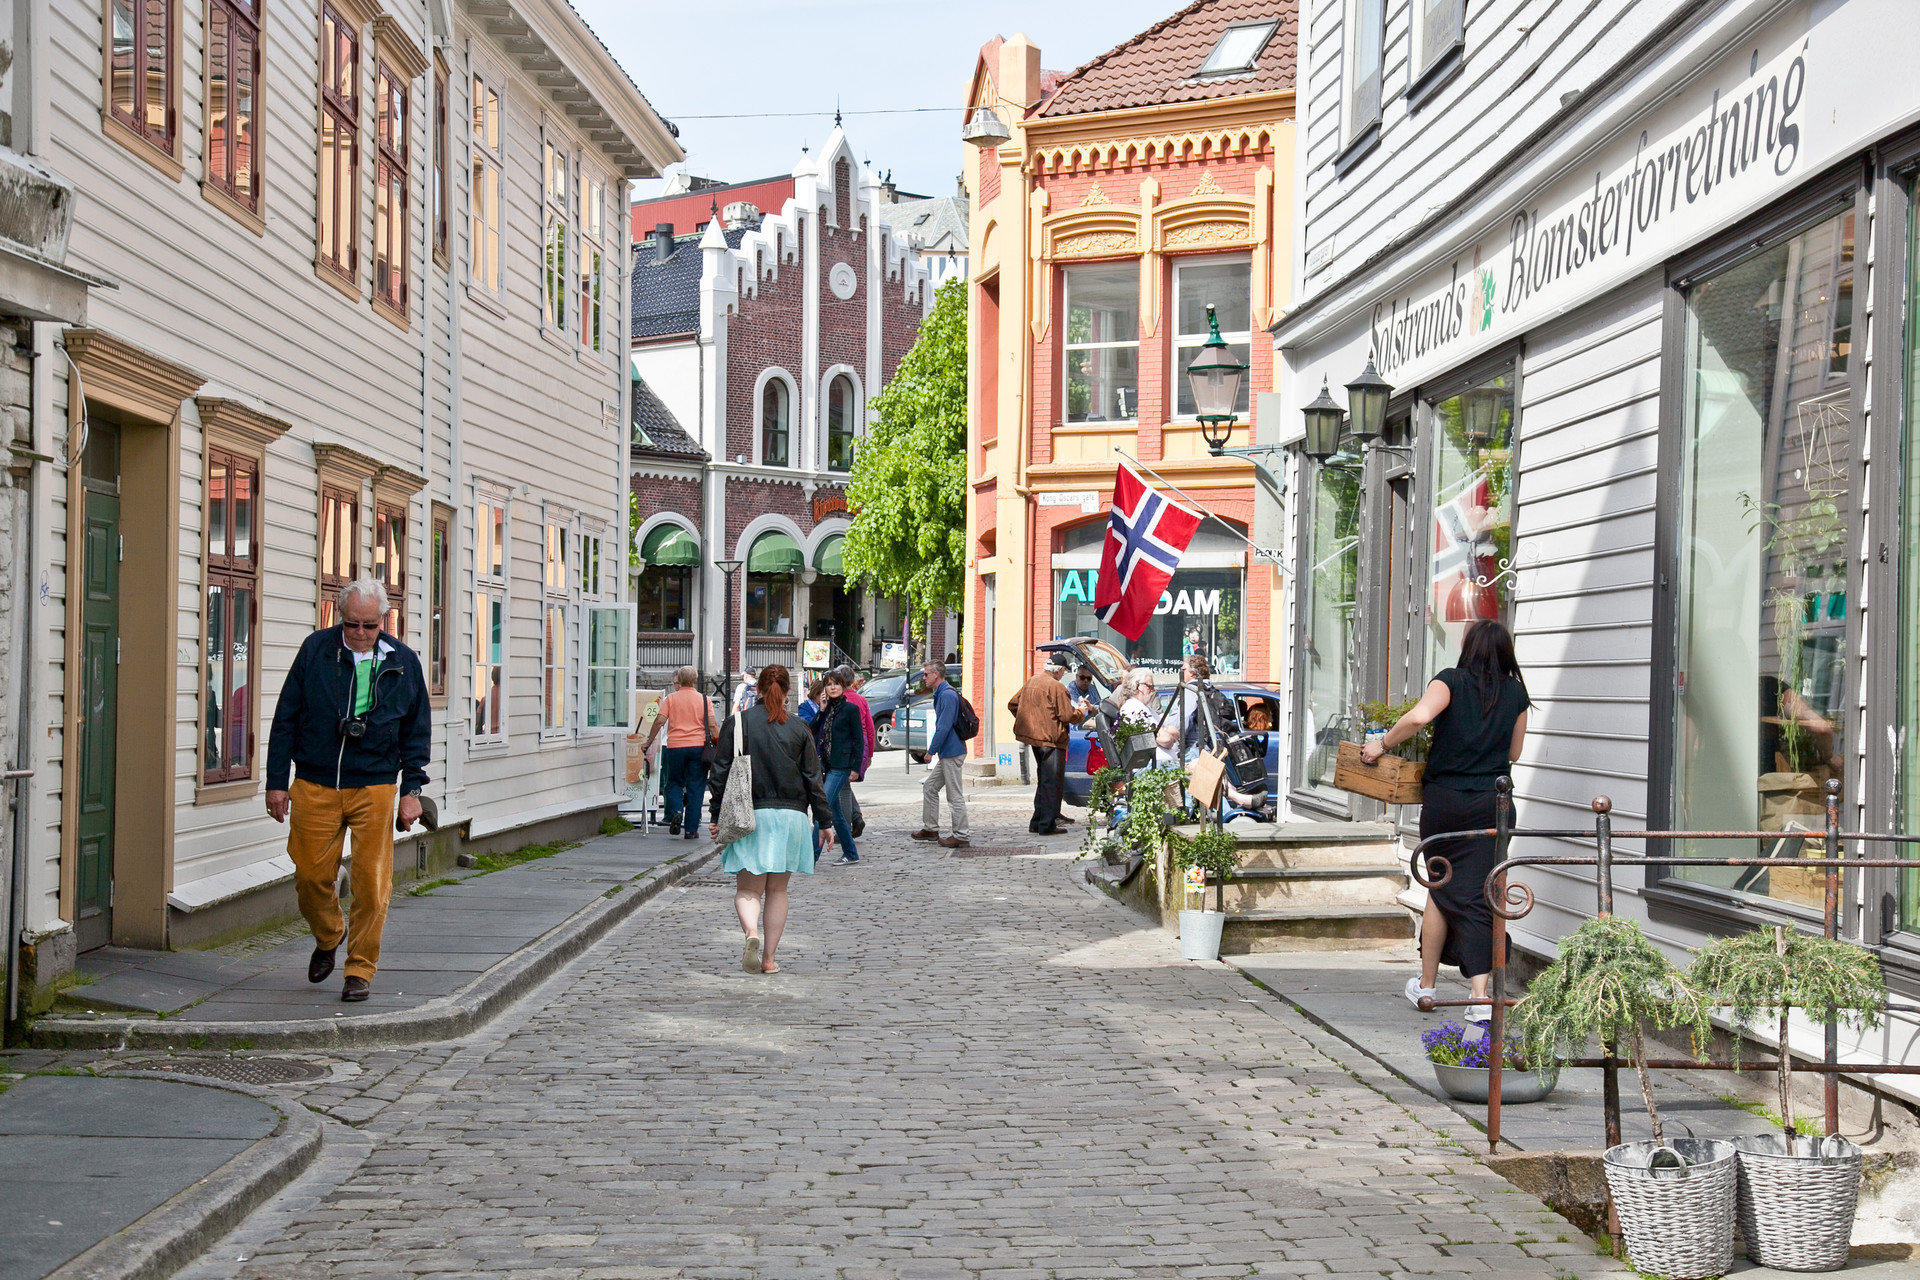 Architecture City city streets europe local streets people shopping Shops Trip Ideas walking building outdoor way scene road Town street neighbourhood sidewalk pedestrian lane human settlement walkway infrastructure Downtown plaza